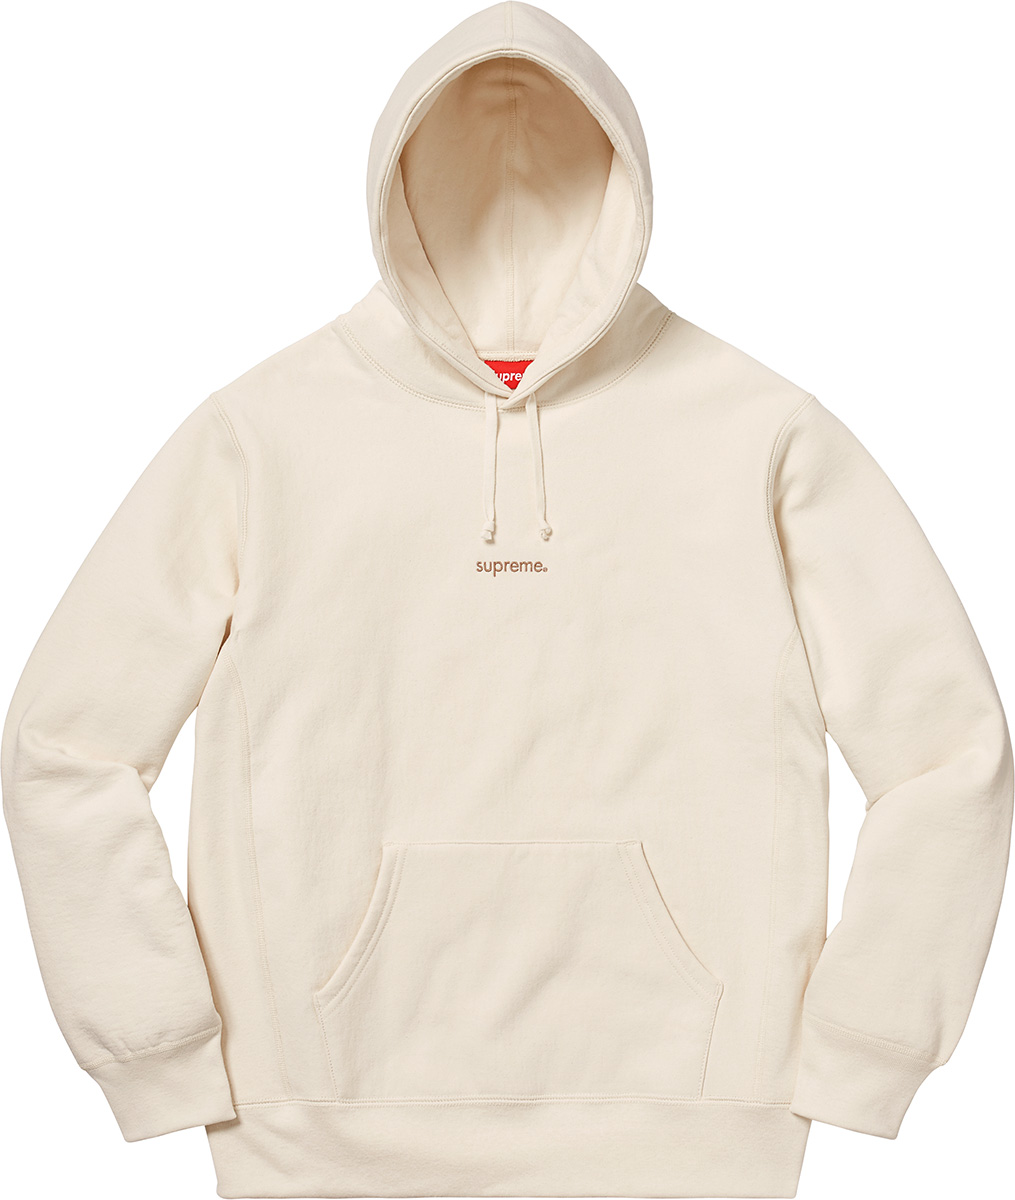 supreme-18aw-fall-winter-trademark-hooded-sweatshirt